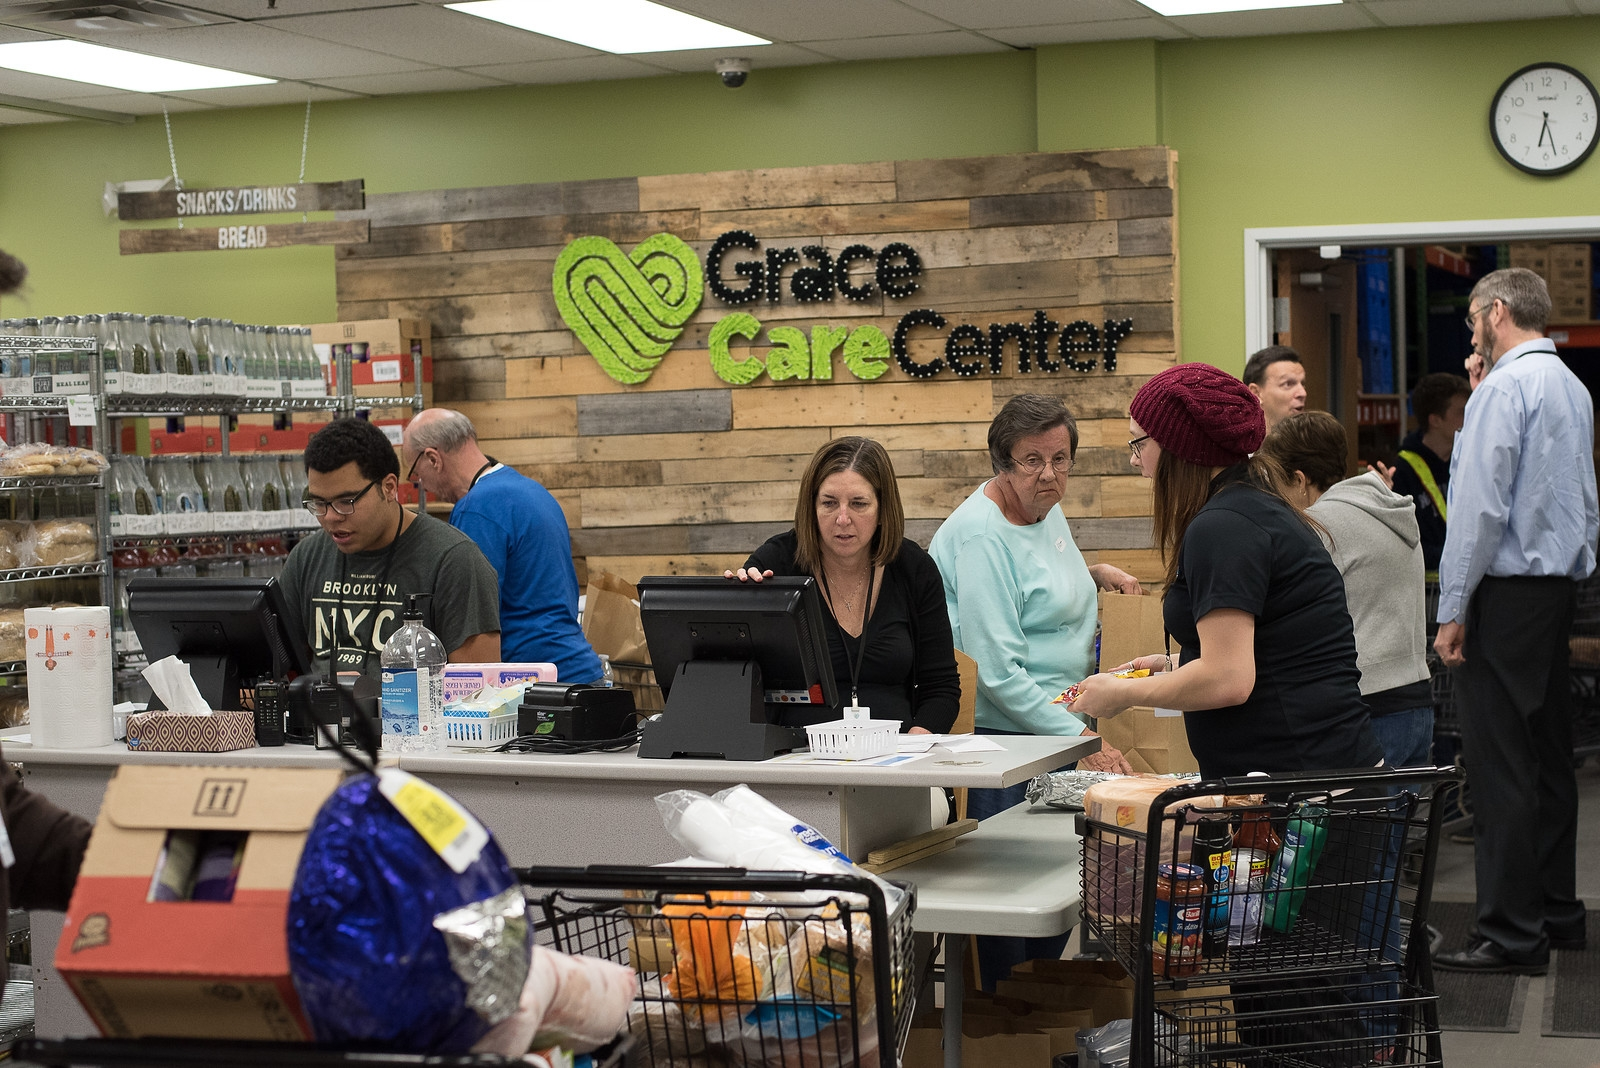 Care Center Open for Government Employees Affected By Shutdown